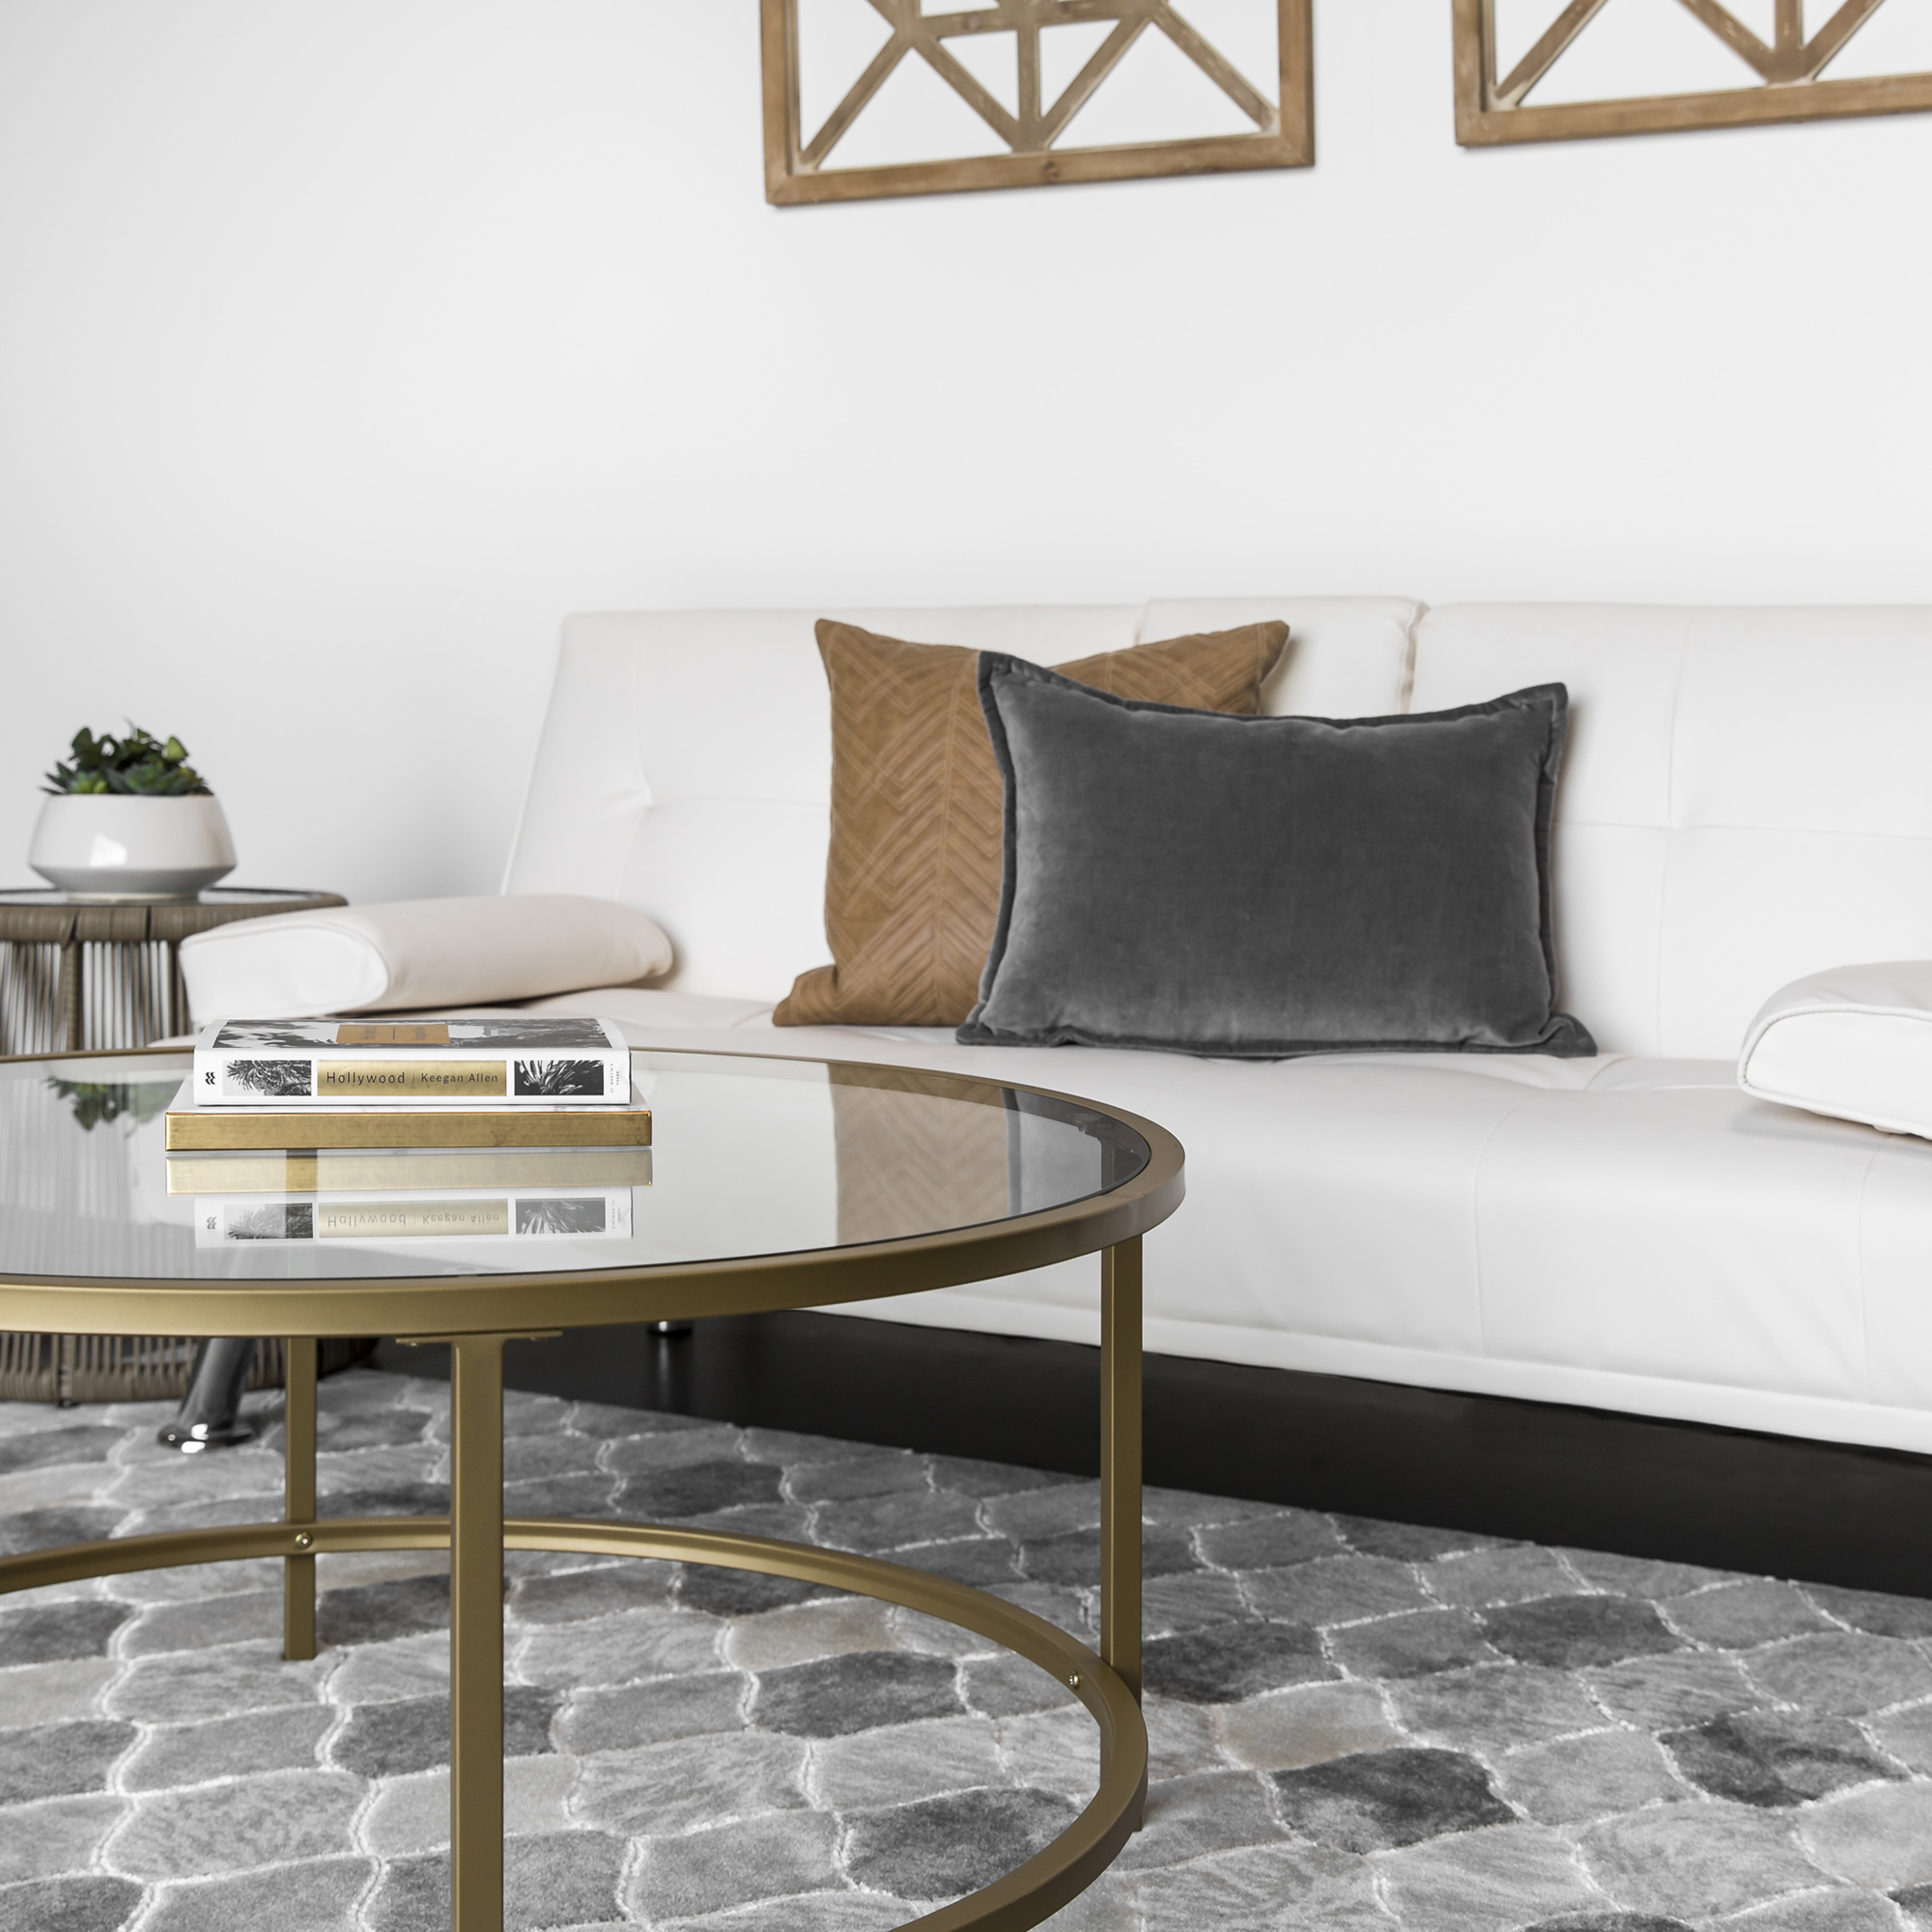 Best Choice Products Round 36in Tempered Glass Coffee Table w/ Satin Gold  Trim for Home, Living Room, Dining Room